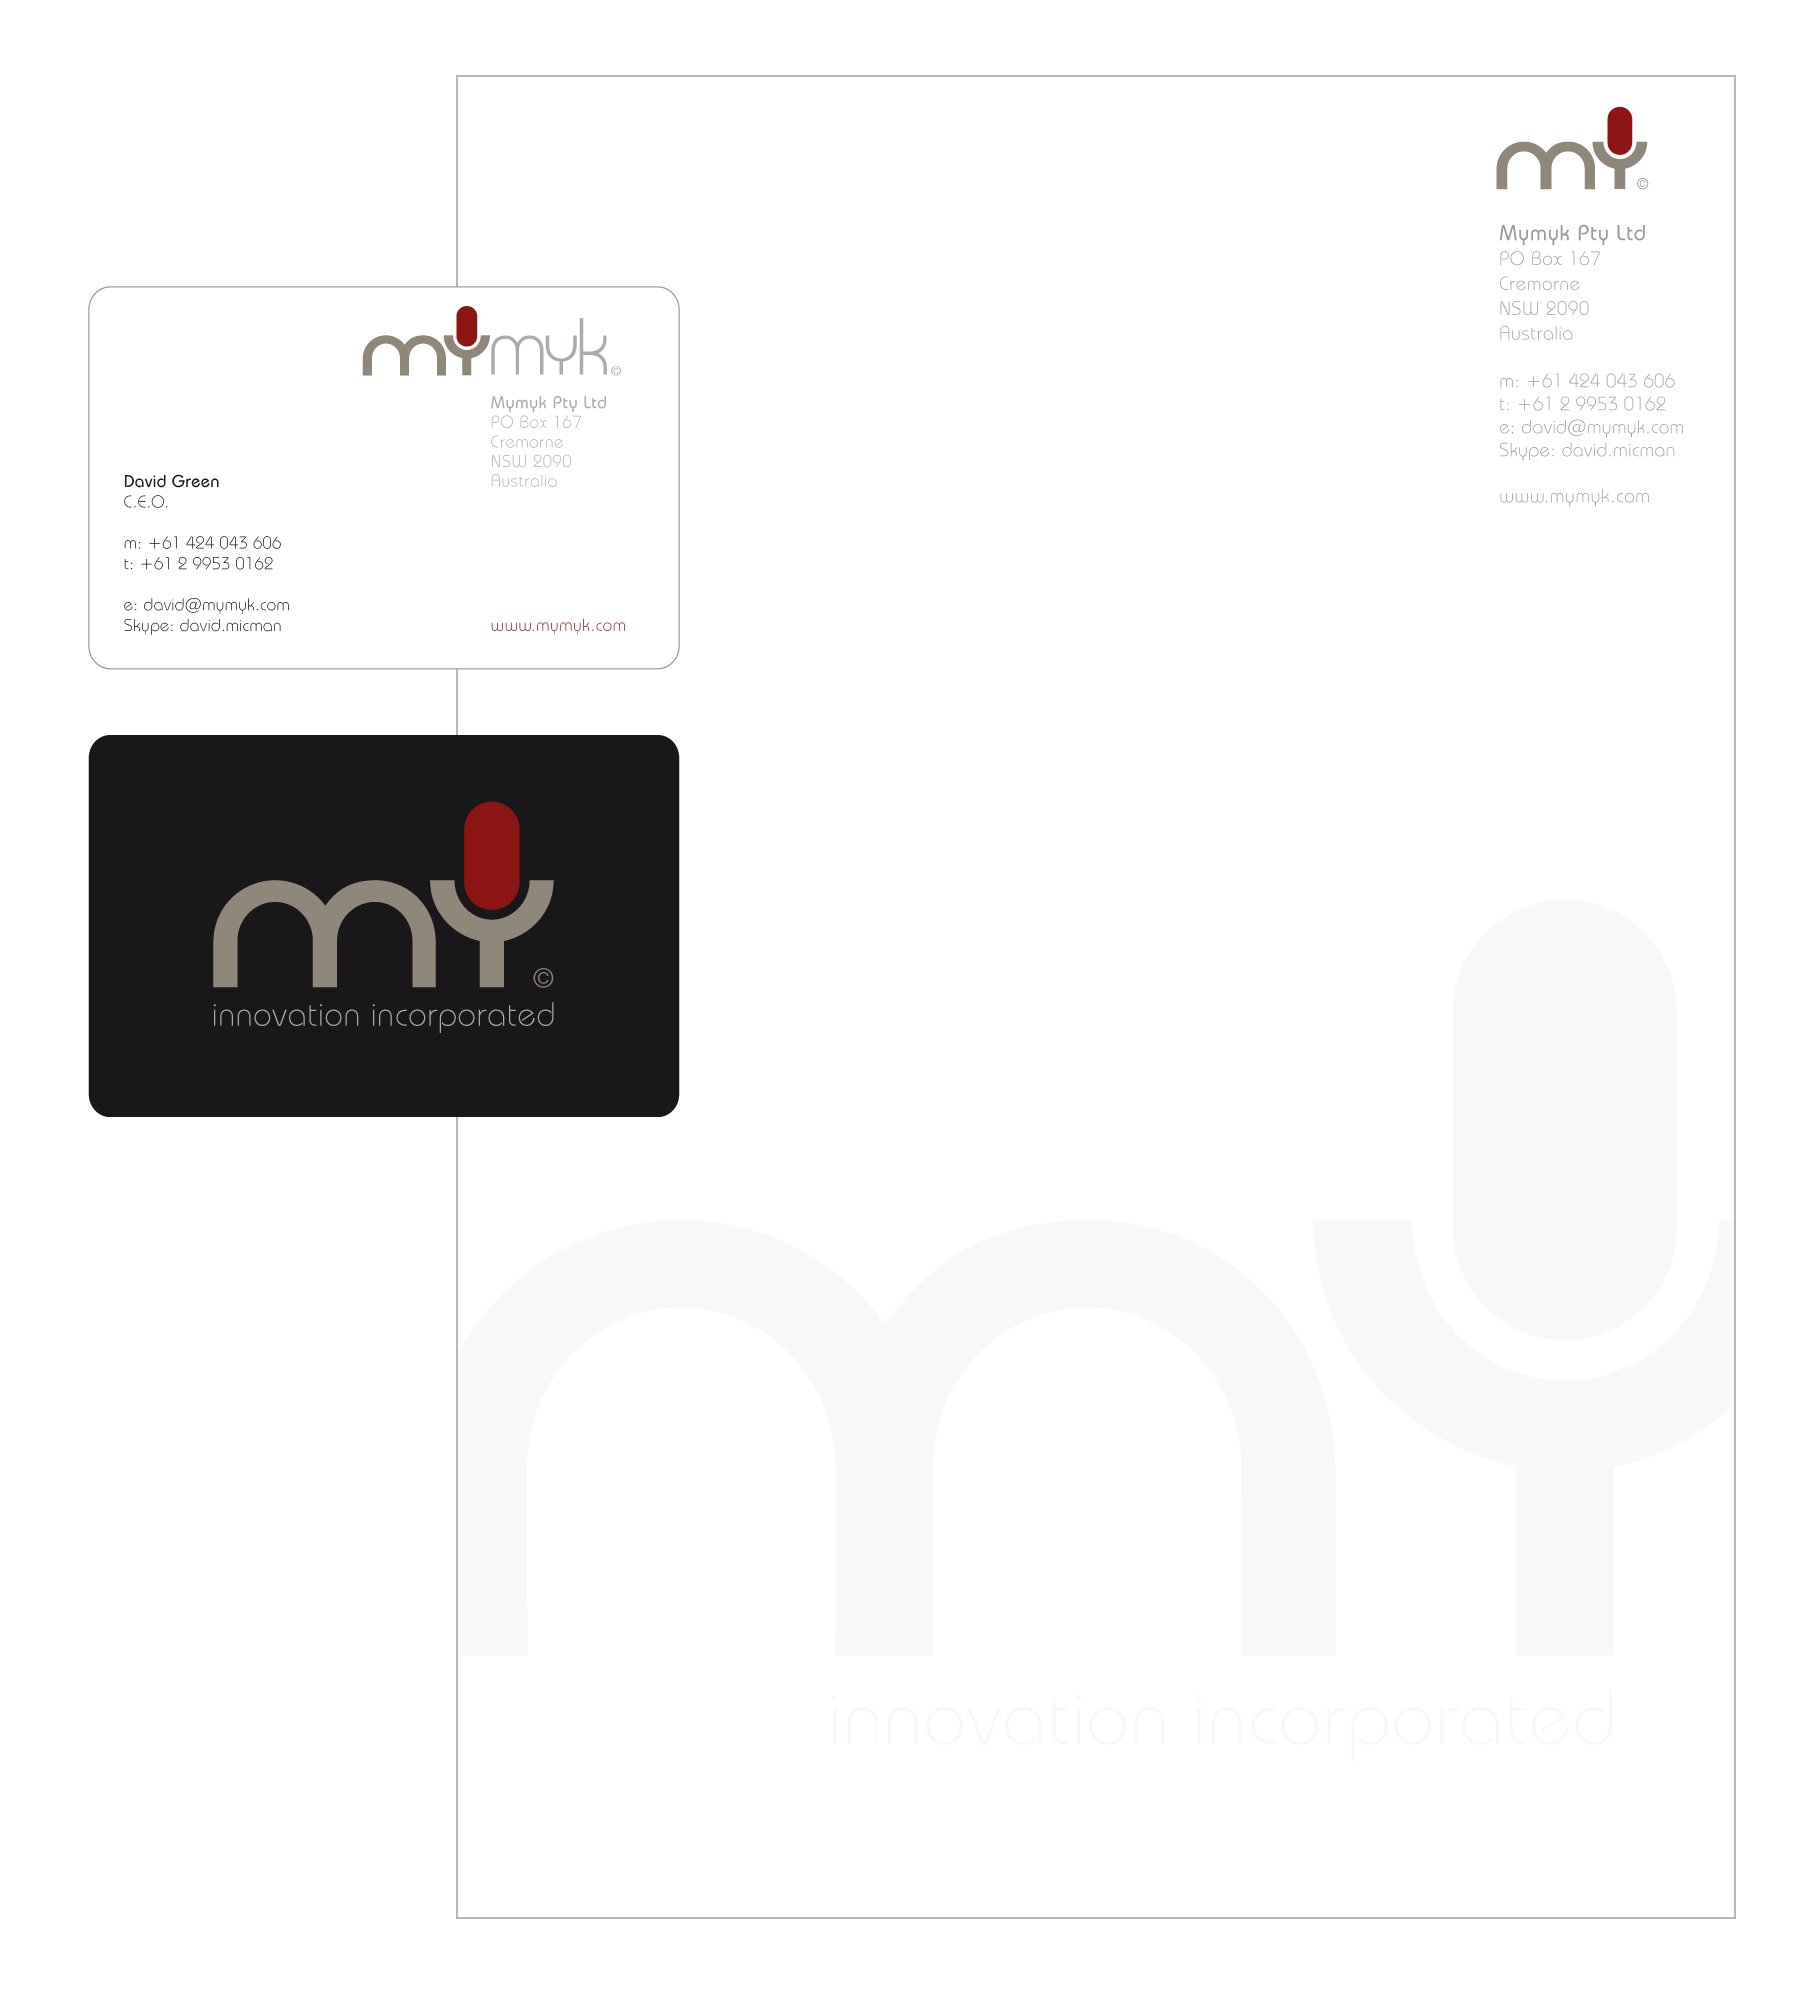 mymyk_stationery